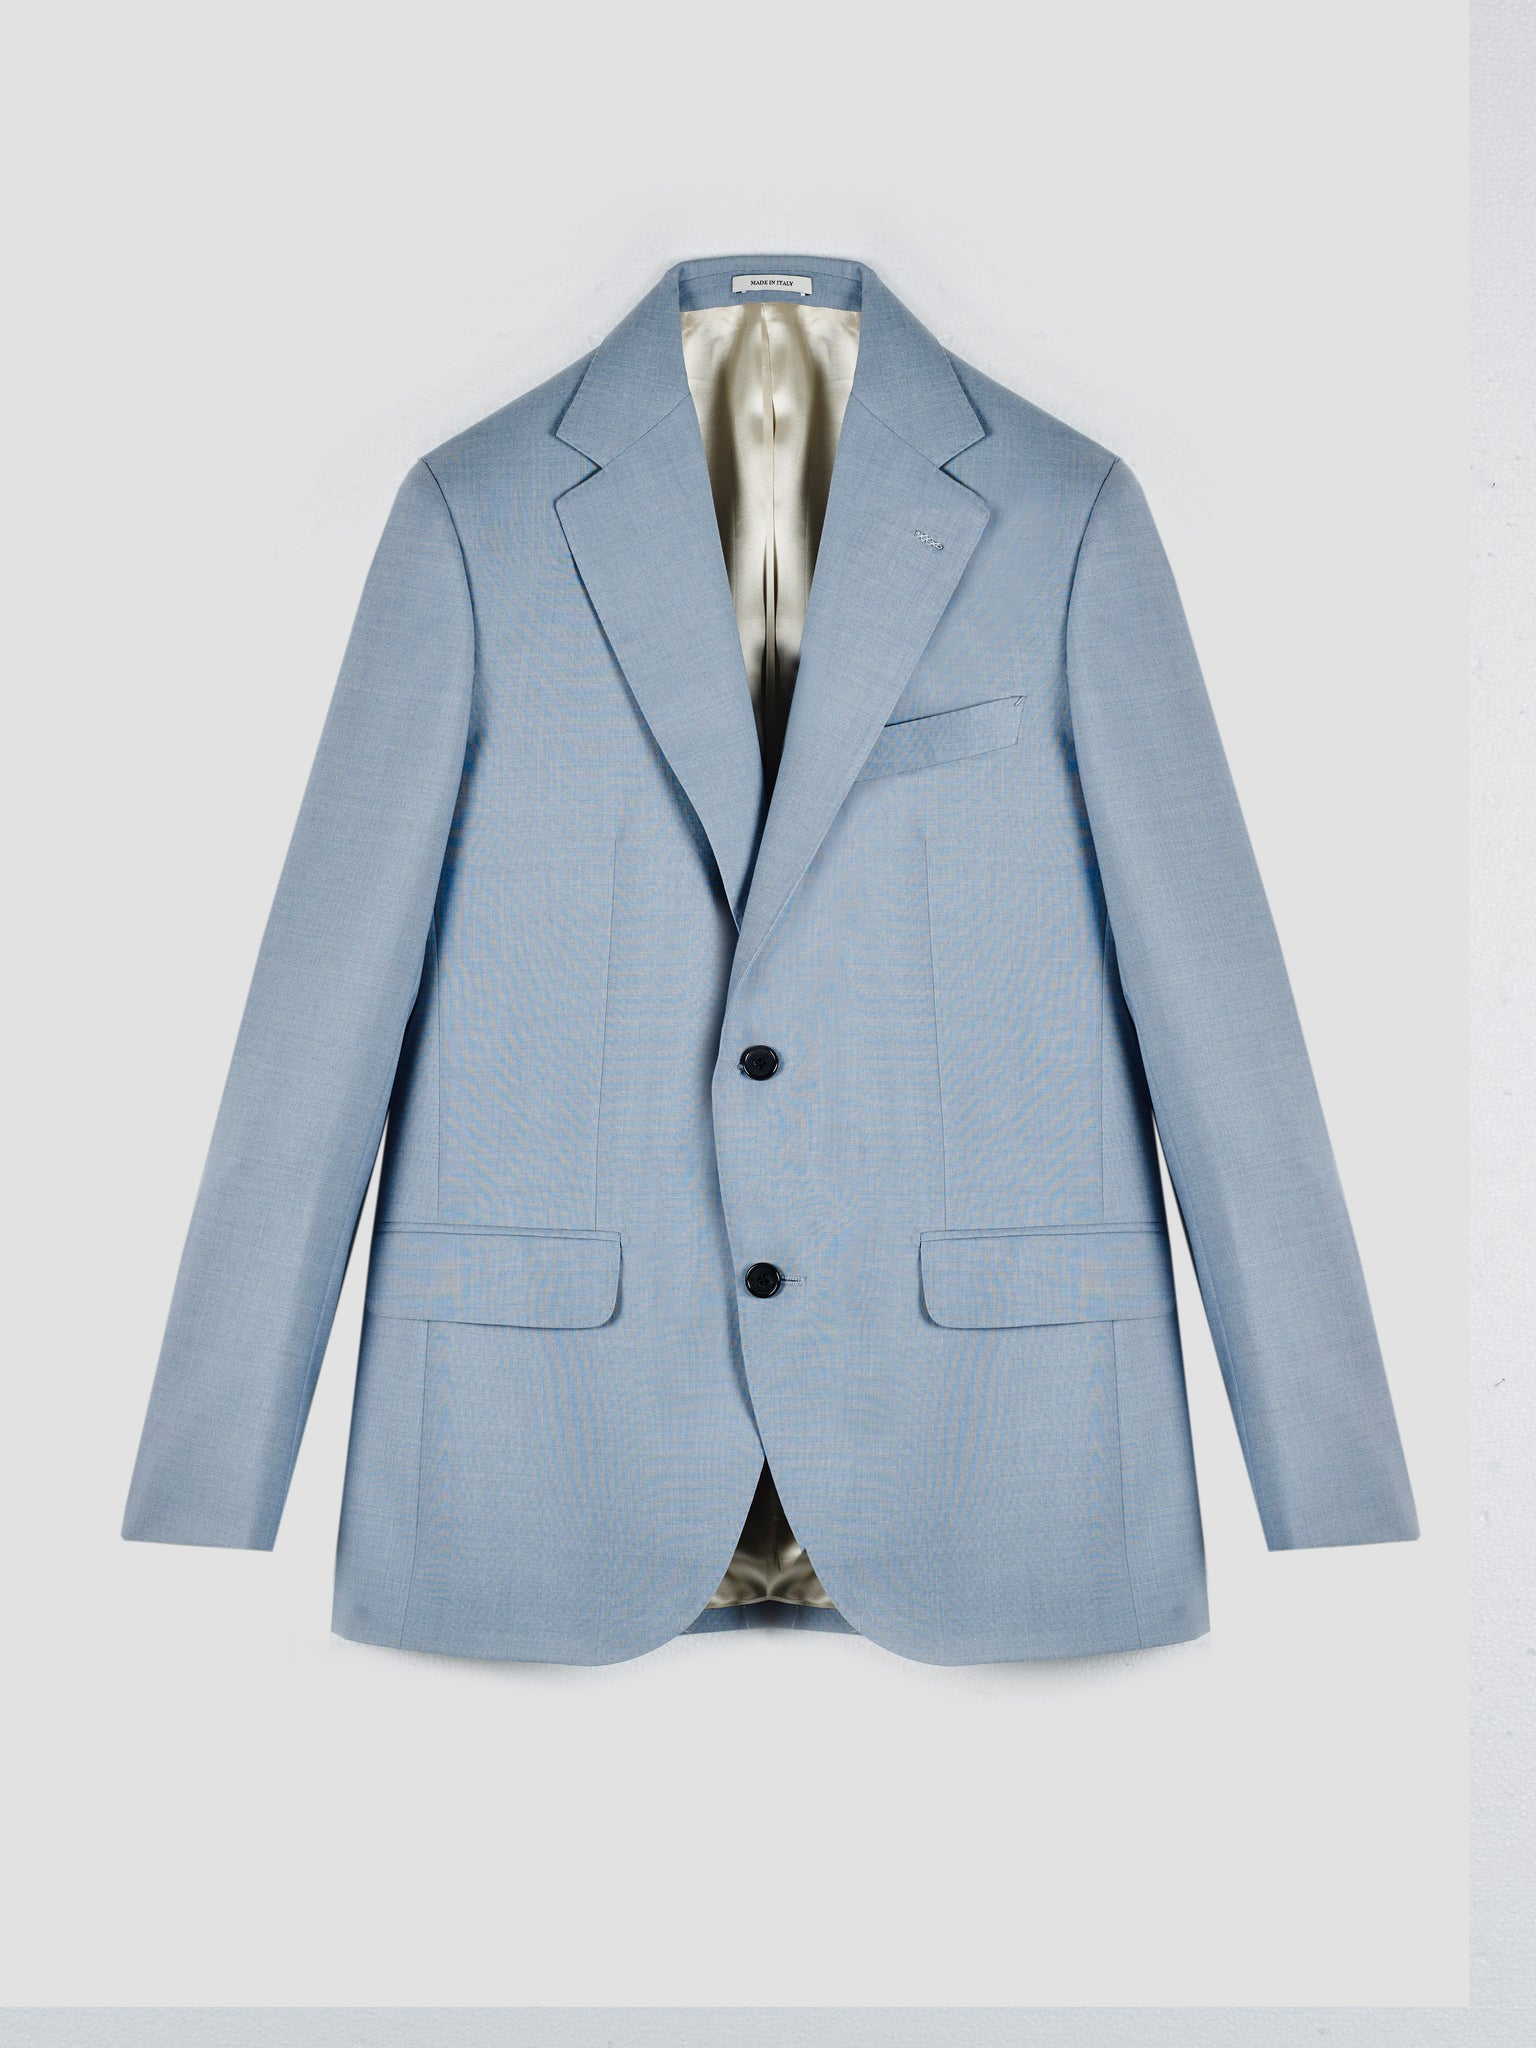 Husbands Light Blue Suit